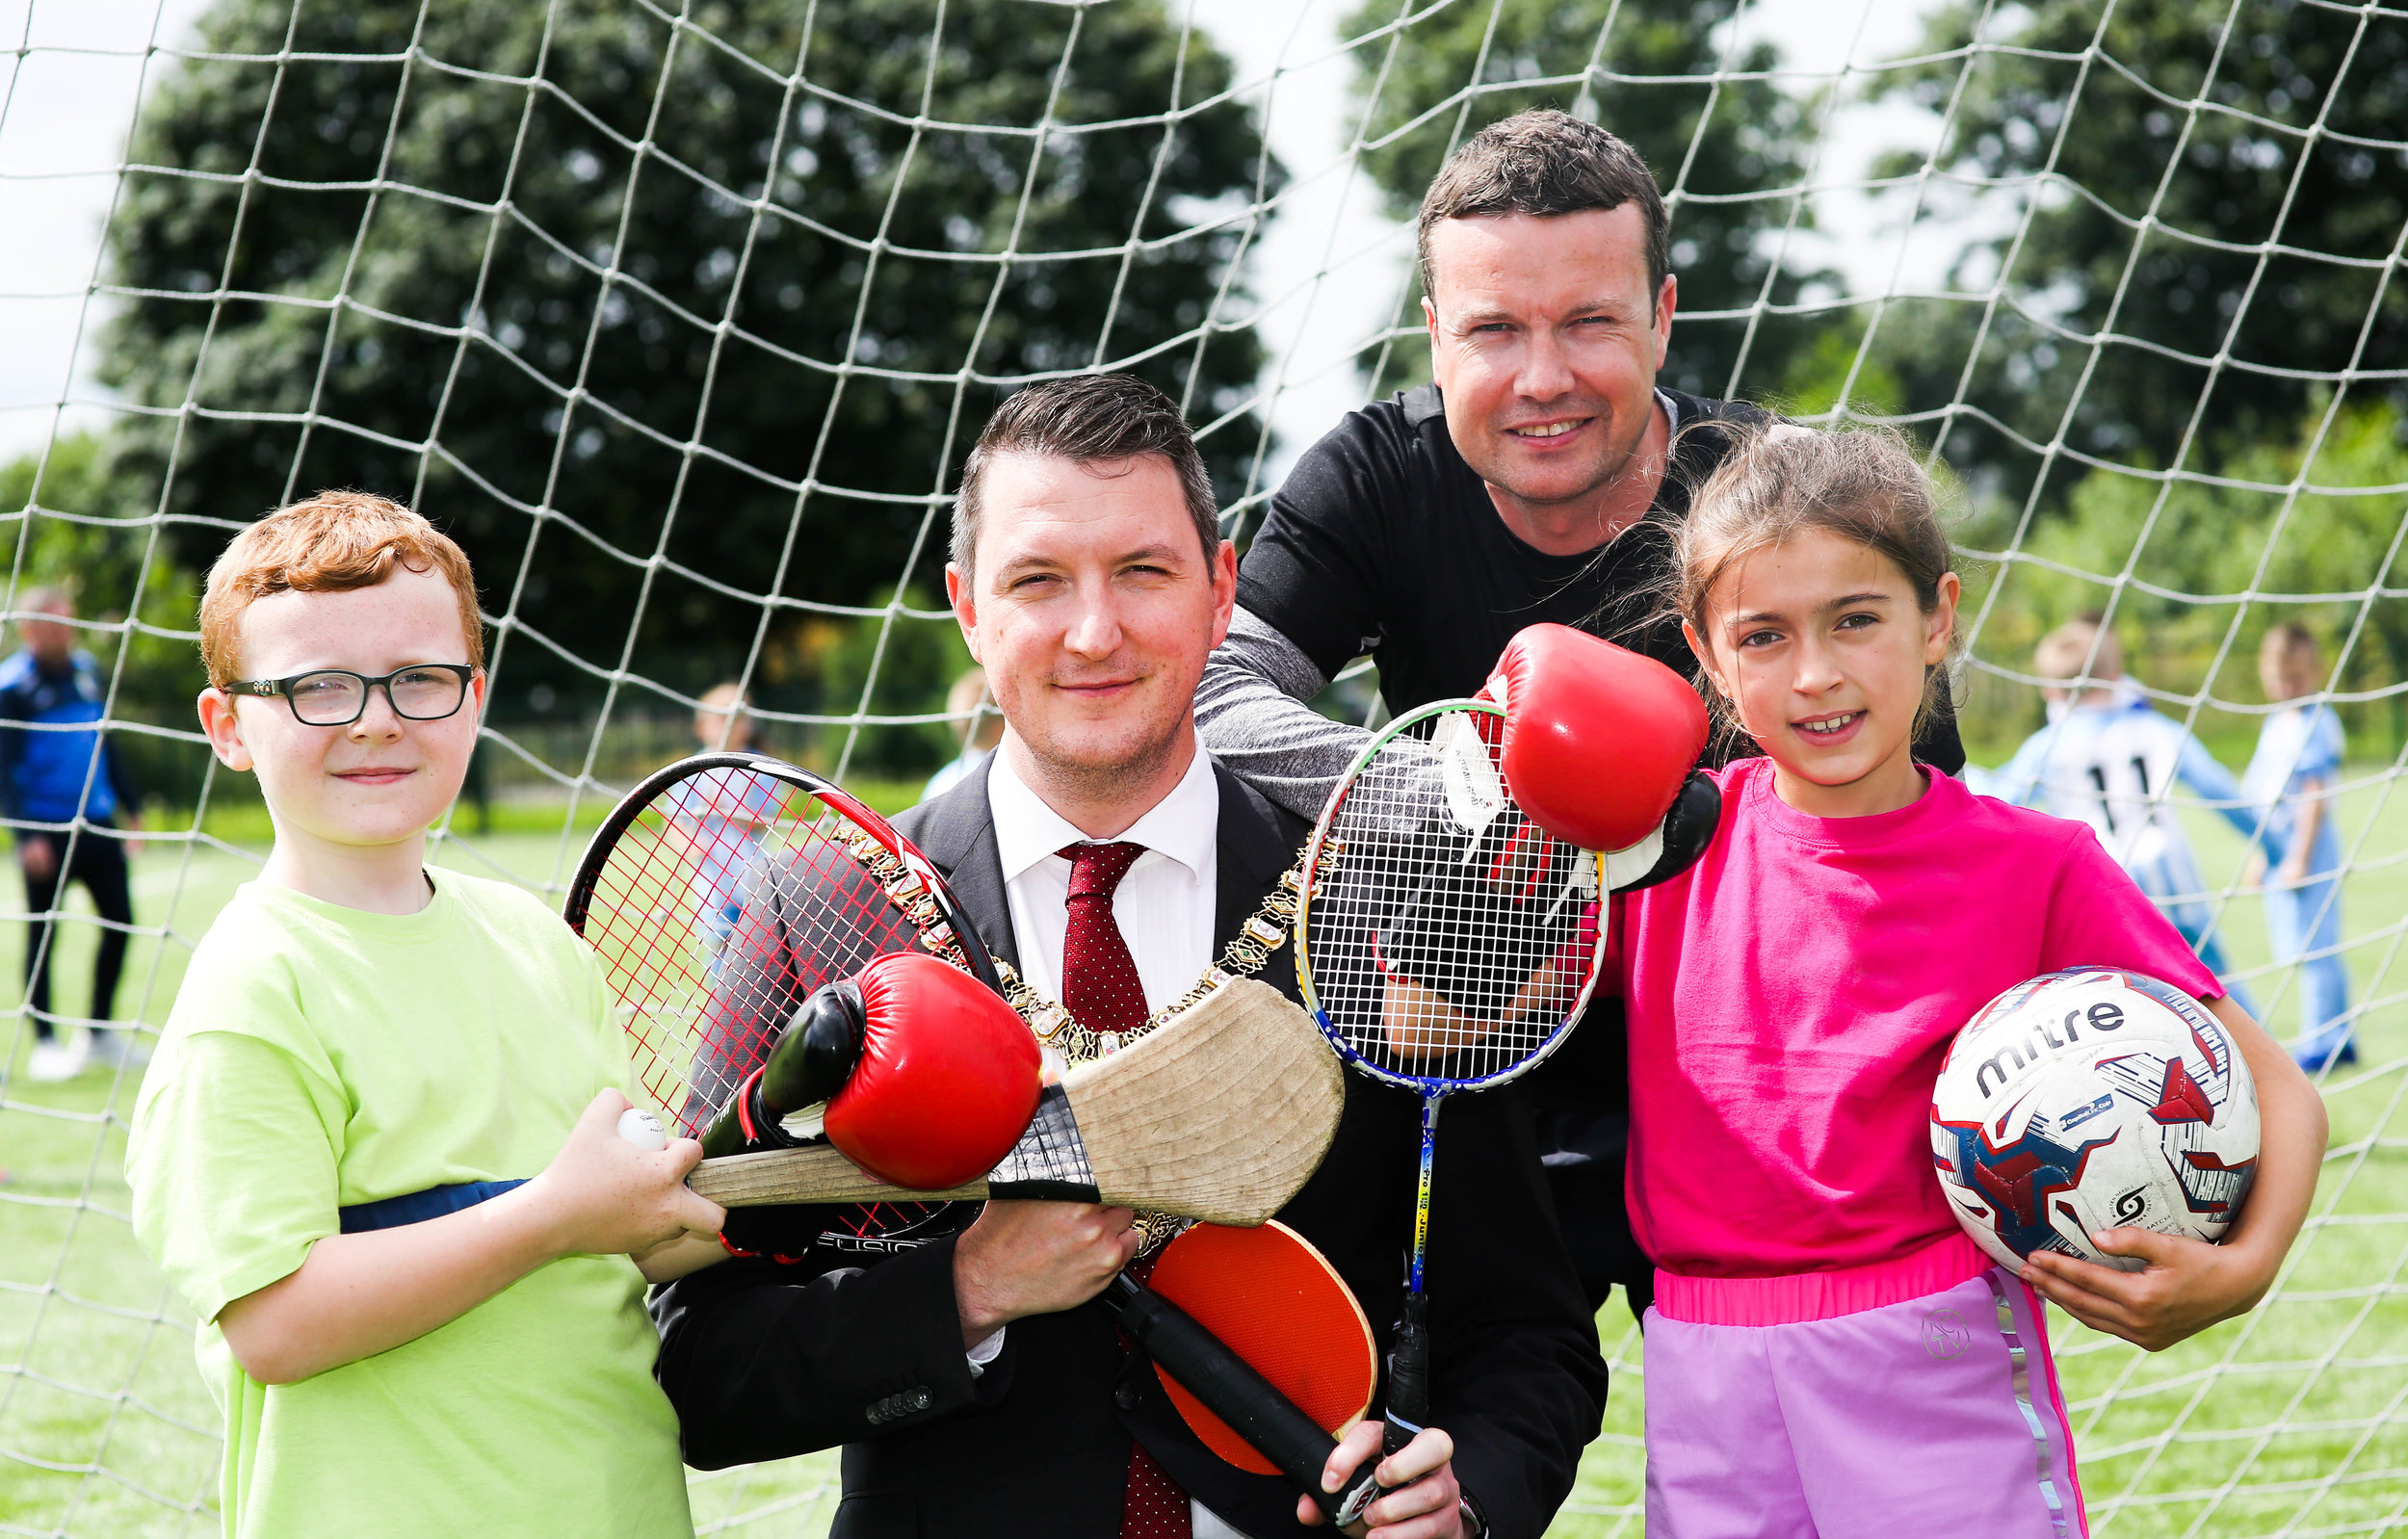 The Lord Mayor of Belfast, John Finucane joins Aidan Thompson from Avoniel Leisure Centre, Leila O'Rawe from Falls Leisure Centre, and Ronan McKenna, GLL Community Sports Manager, at the annual Belfast Summer Sports Day hosted by GLL.